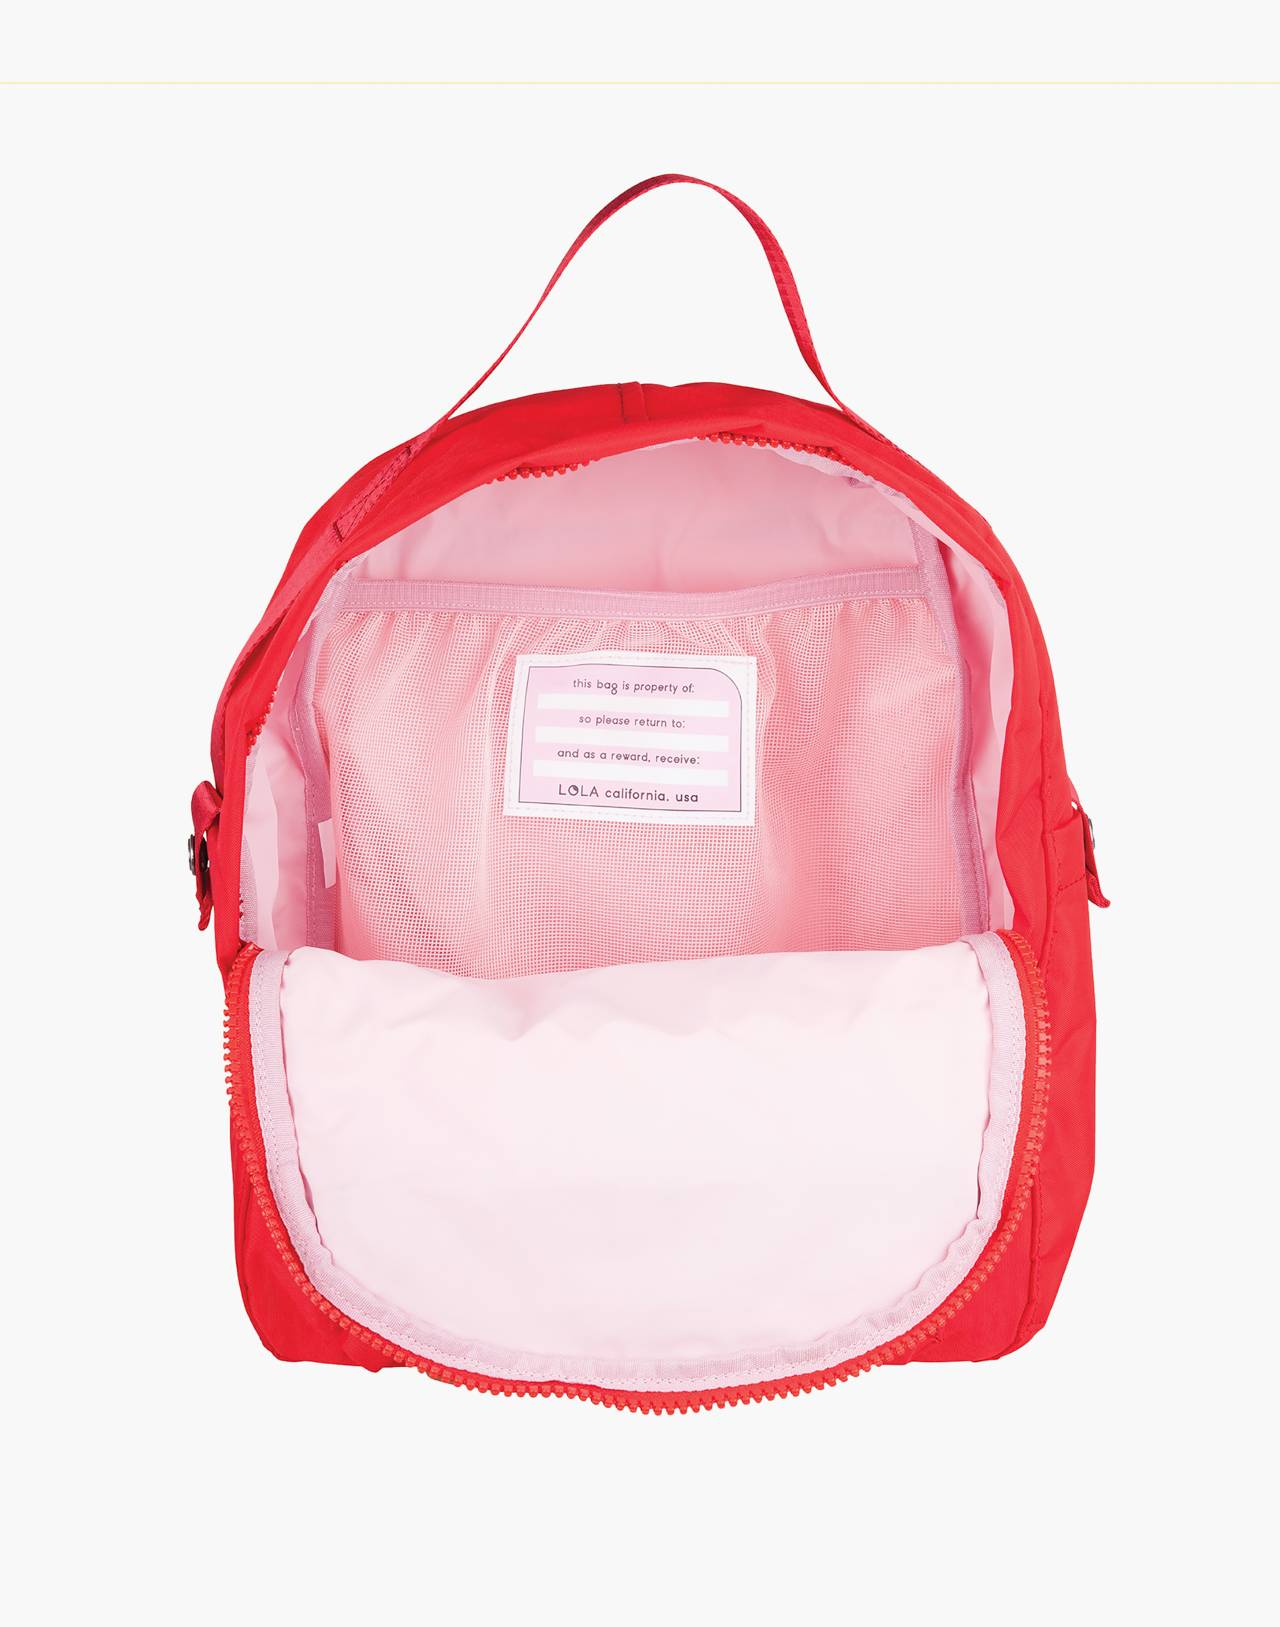 LOLA™ Mondo Escapist Large Backpack in red image 2